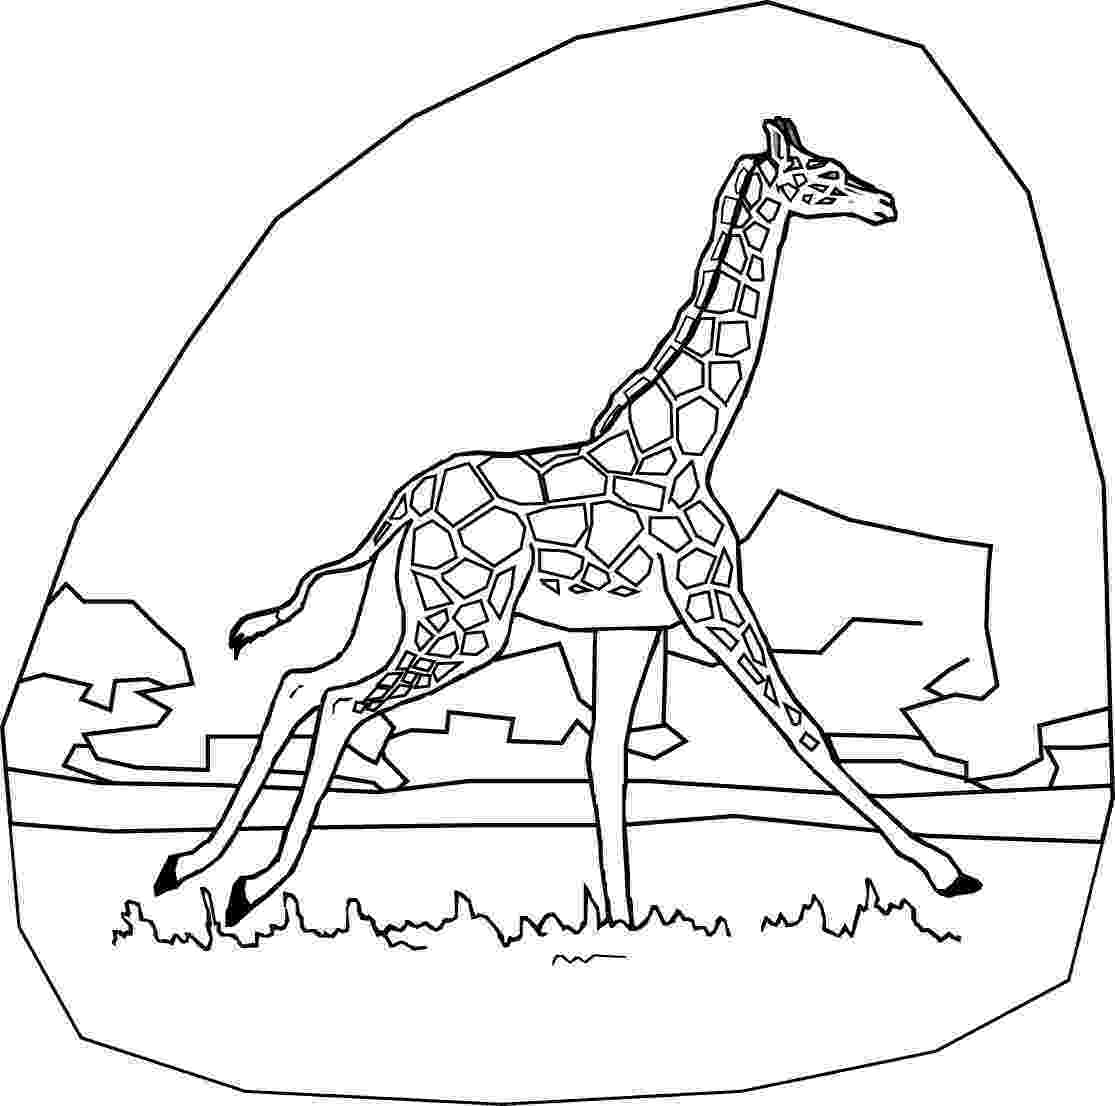 giraffe to color giraffe coloring pages coloring pages to print color to giraffe